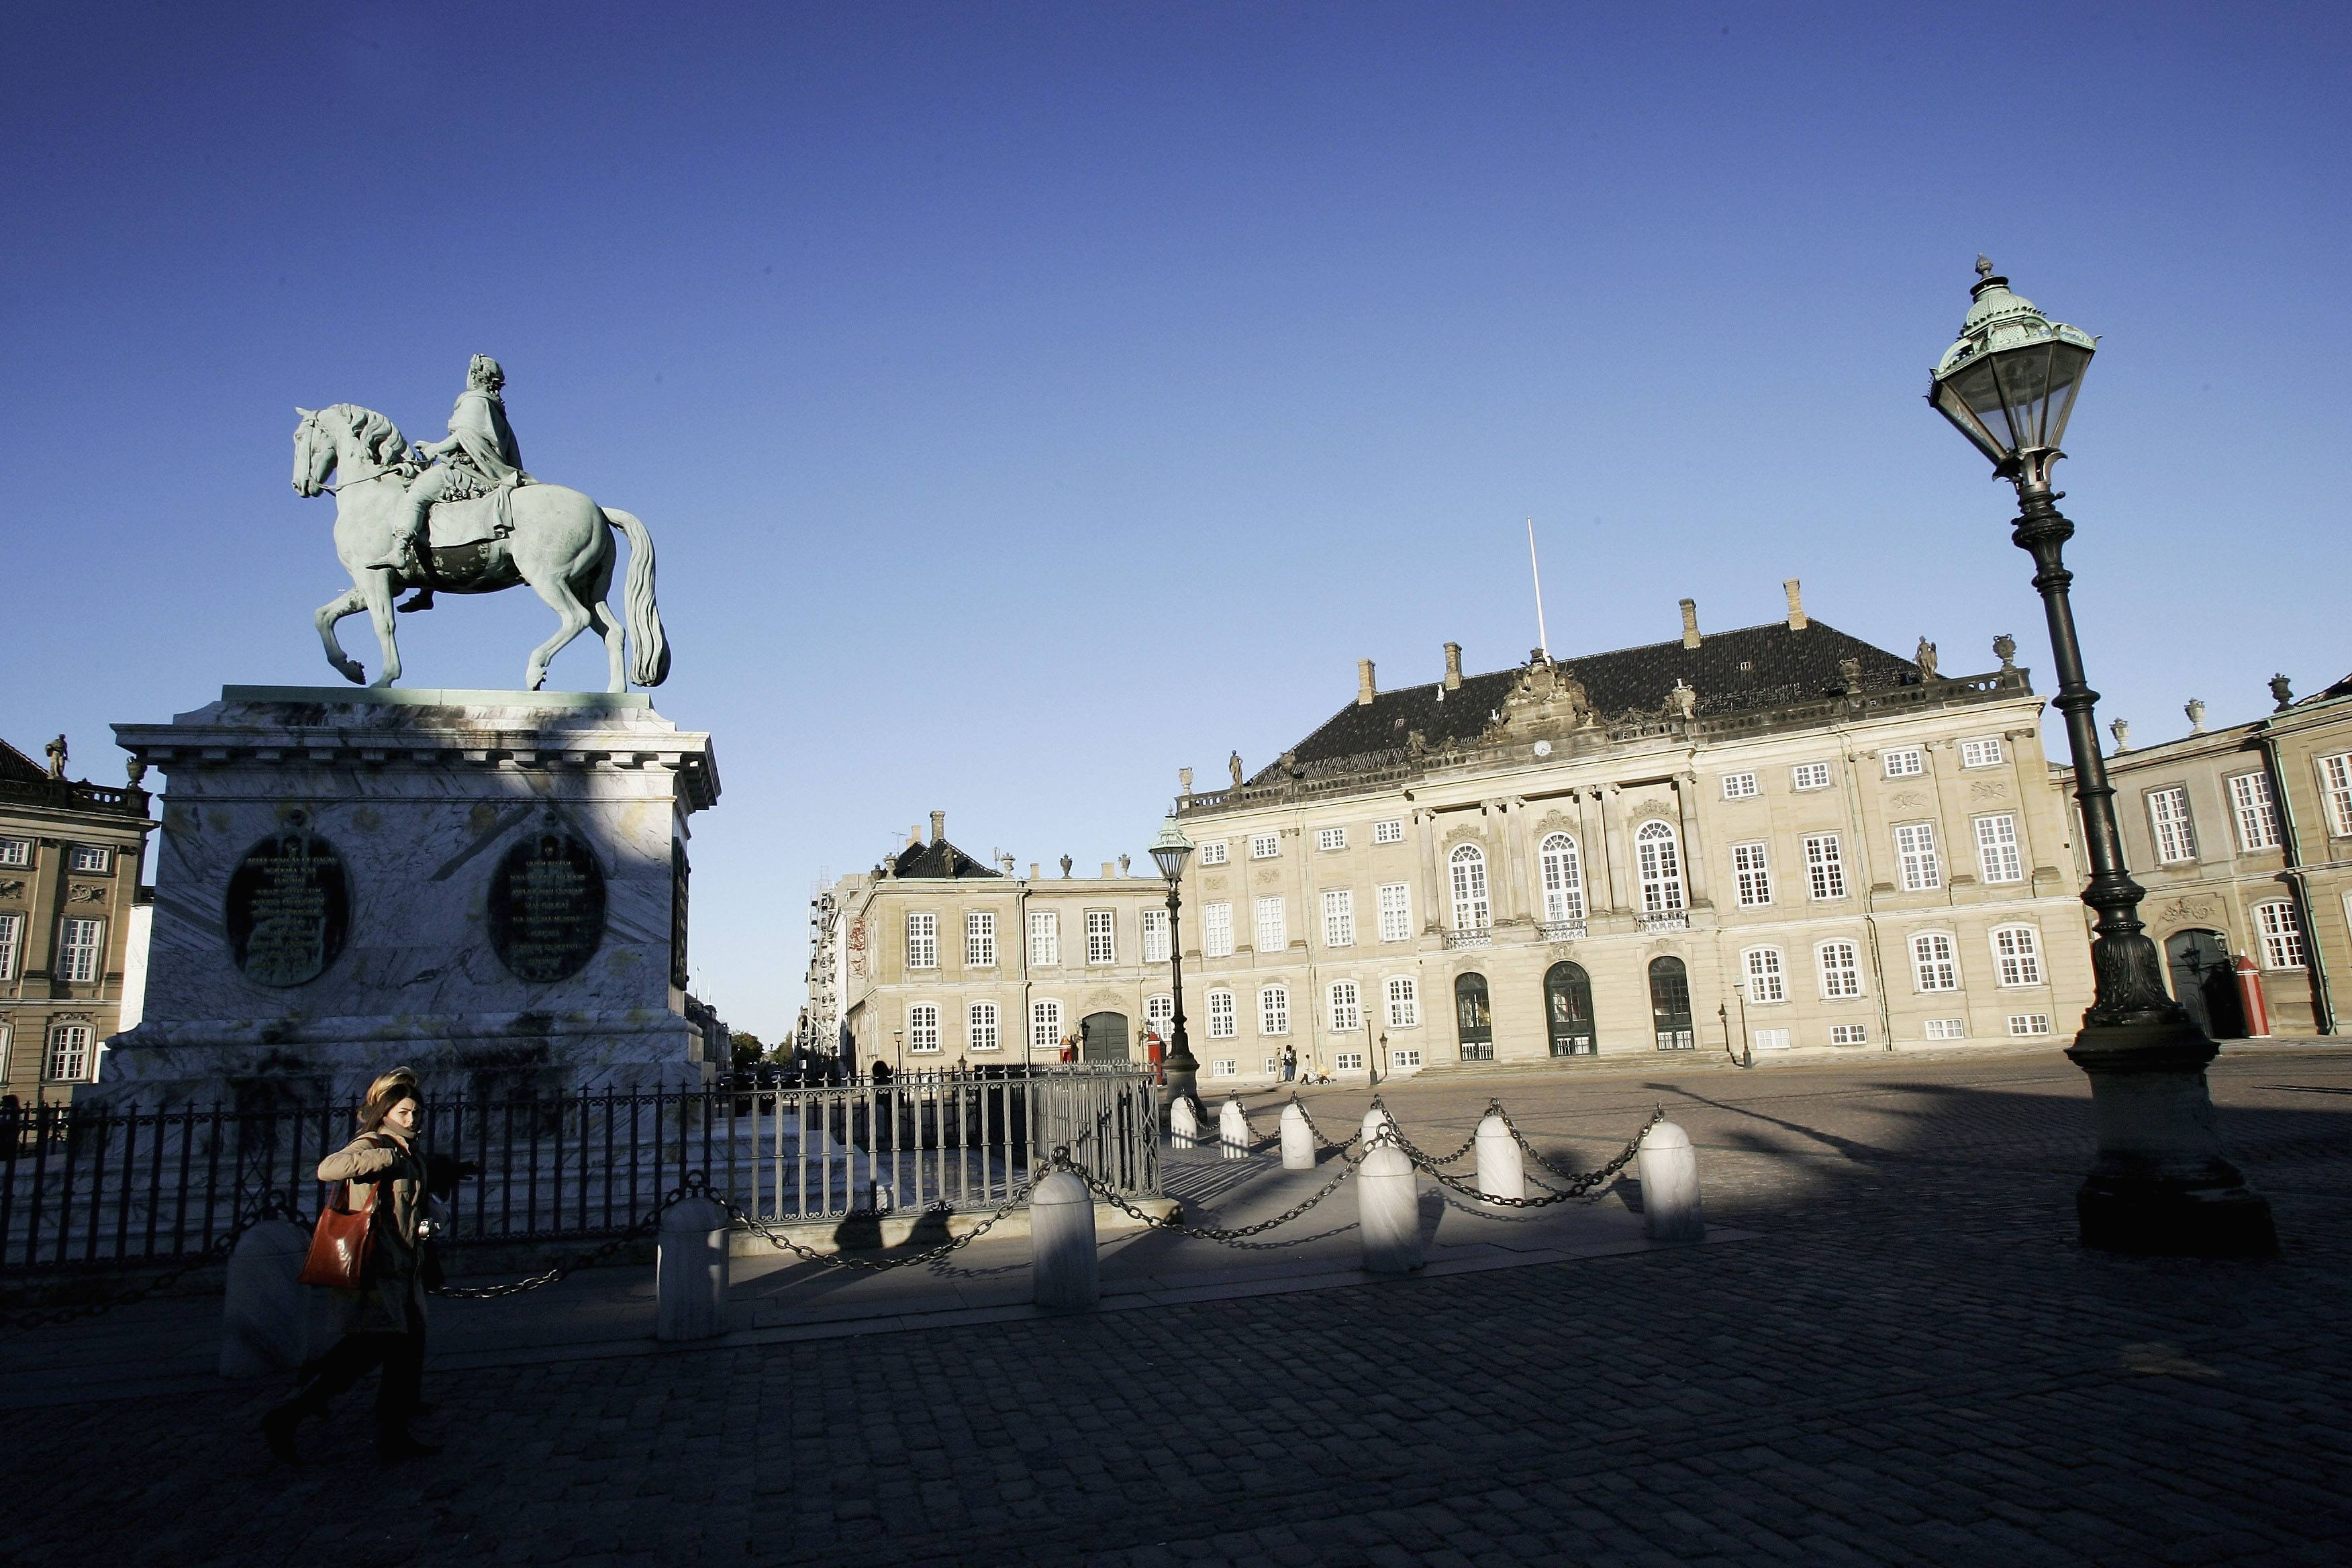 A statue of Fredrick V on Horseback is seen in the center of the Amalienborg Slot, home of the Danish Royal family